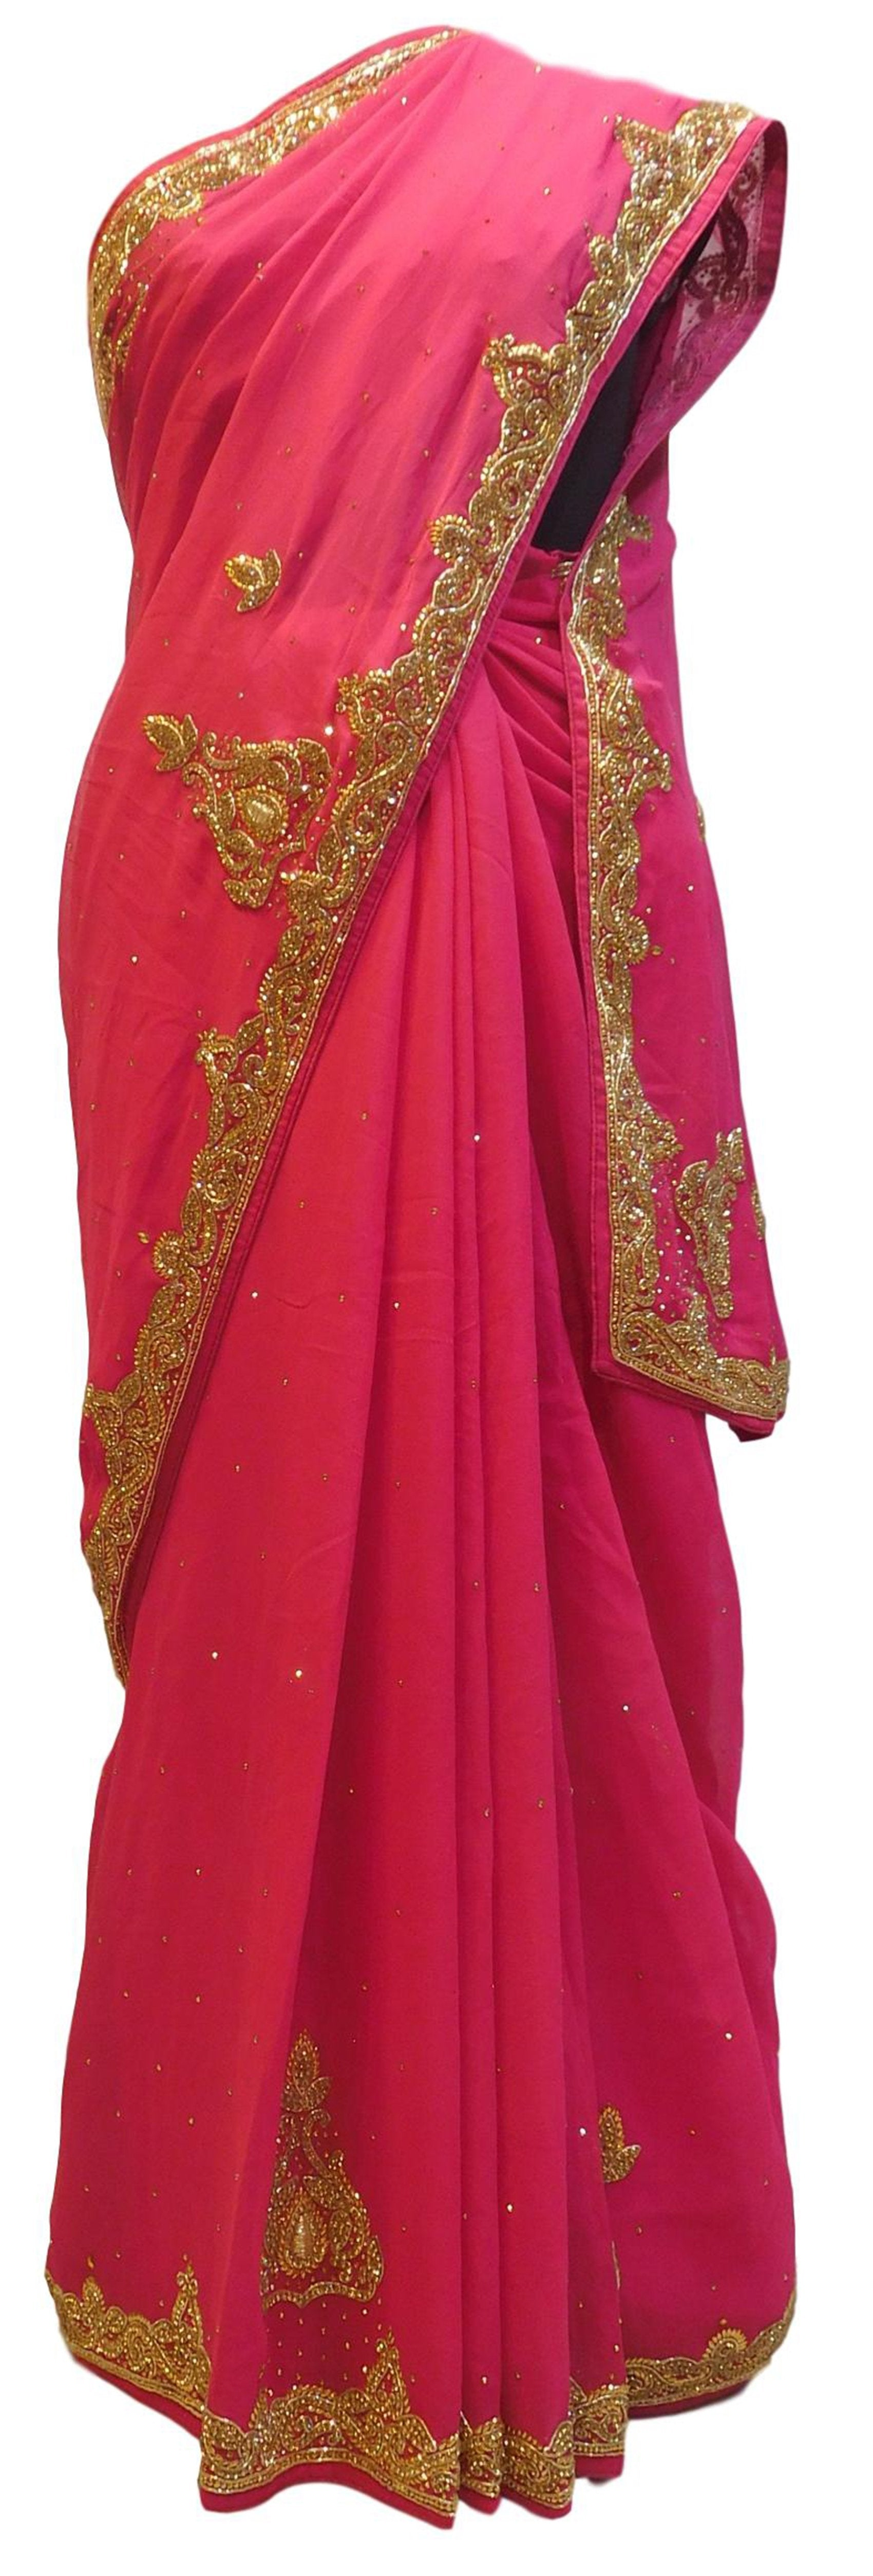 Pink Designer Bridal PartyWear Georgette (Viscos) Bullion Stone Work Wedding Saree Sari E034